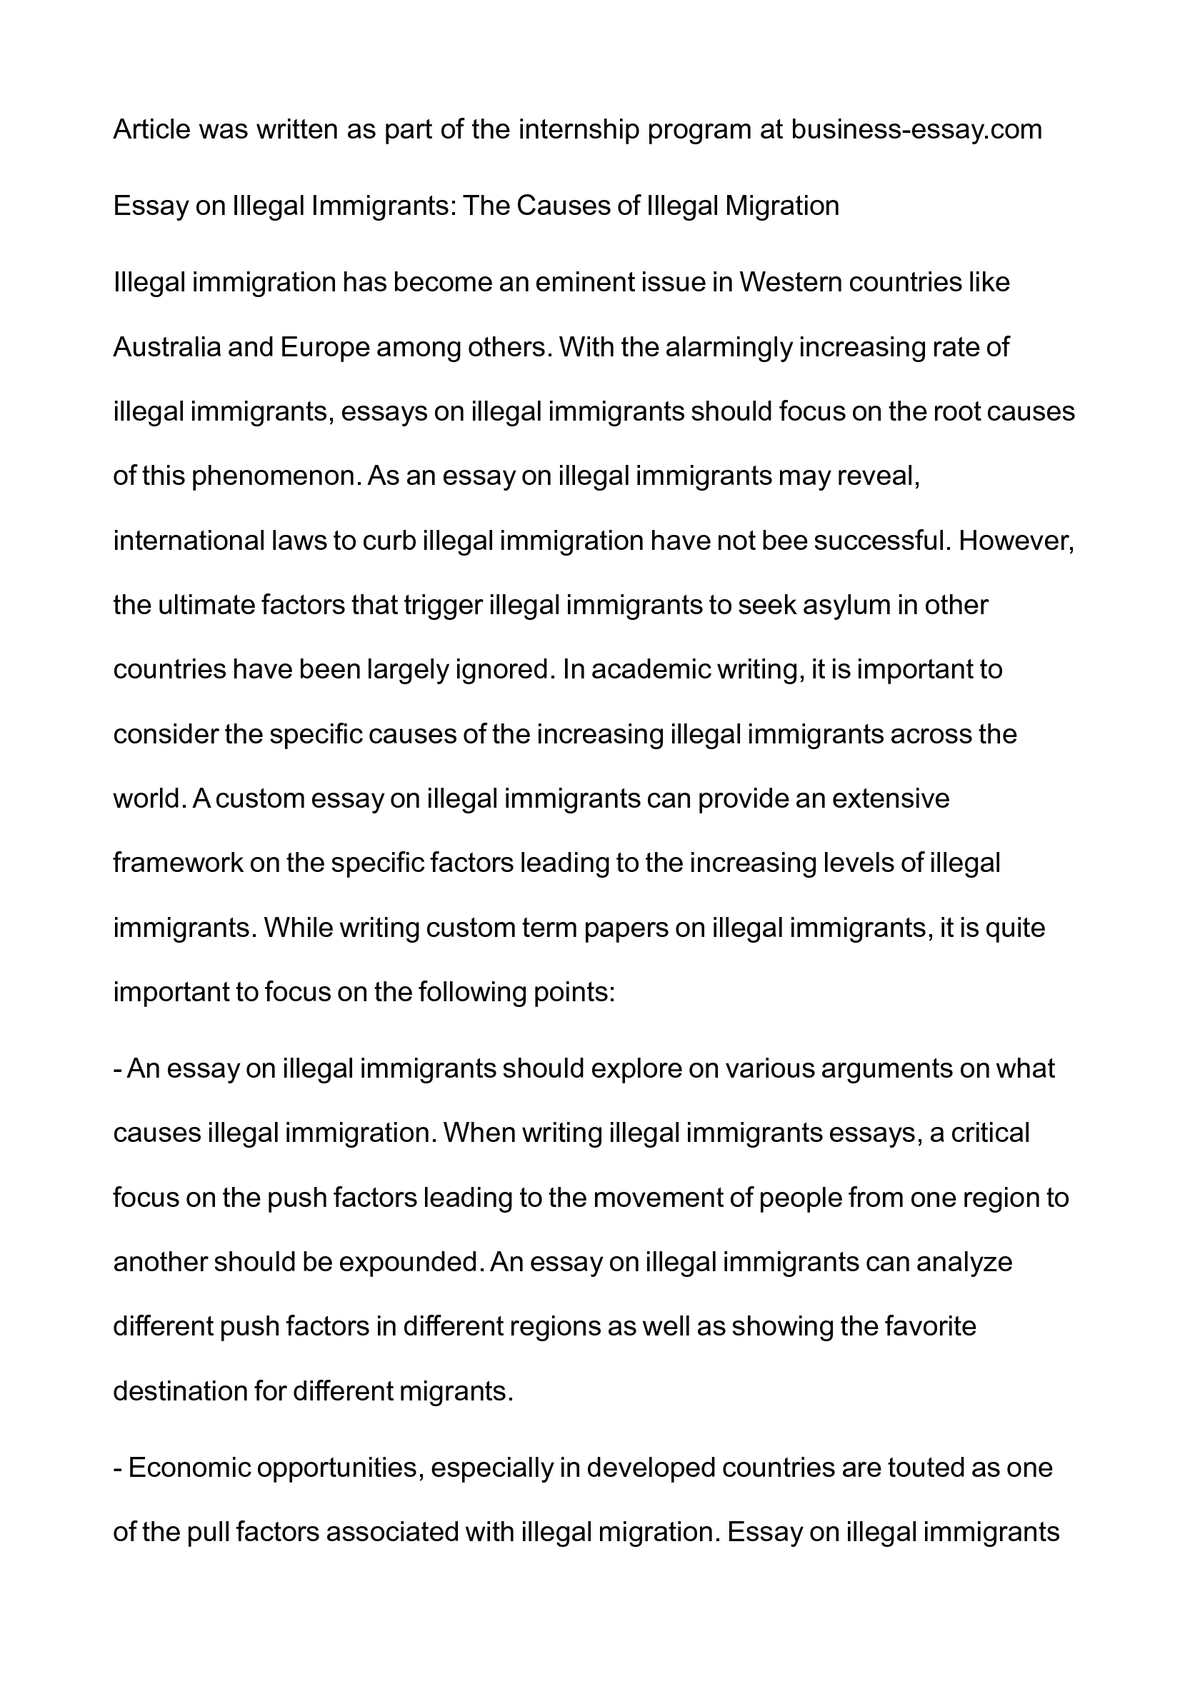 002 Essay Example Argumentative On Immigration Illegal P Against Thesis Pro Outline Wonderful Laws Topics Full